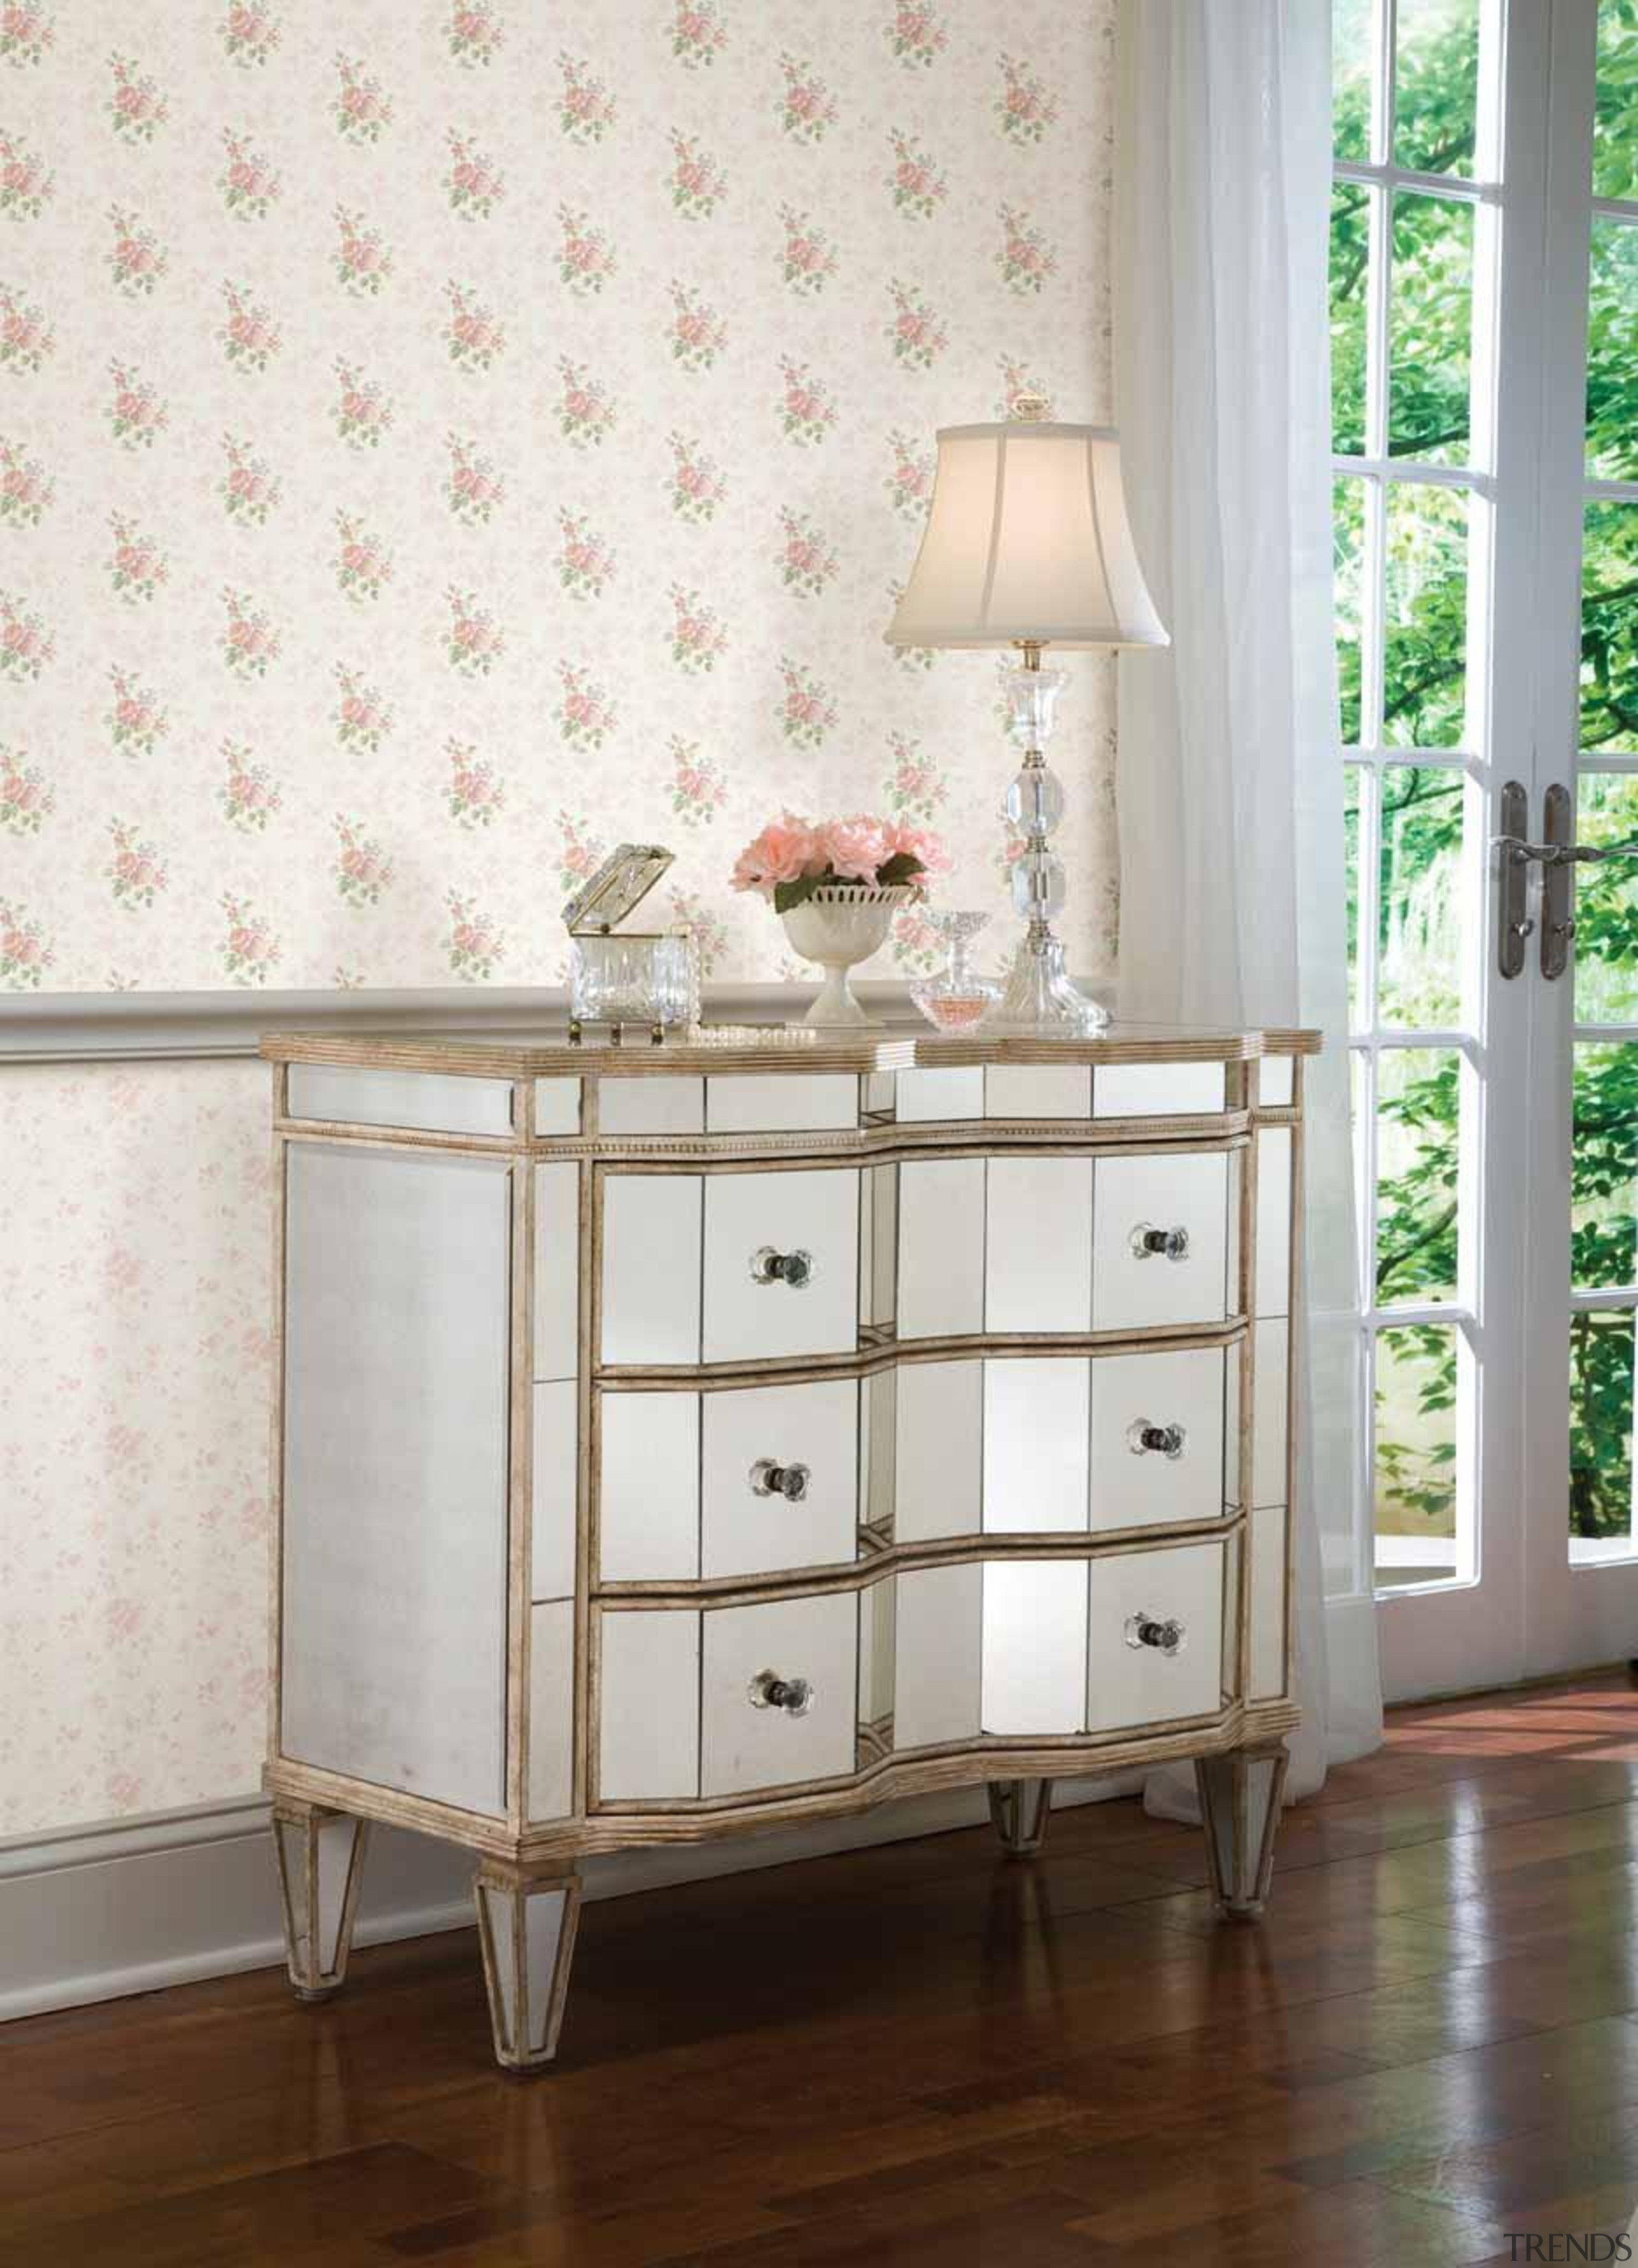 Saphyr II Range - bed frame | chest bed frame, chest of drawers, drawer, end table, furniture, home, interior design, nightstand, product, sideboard, table, white